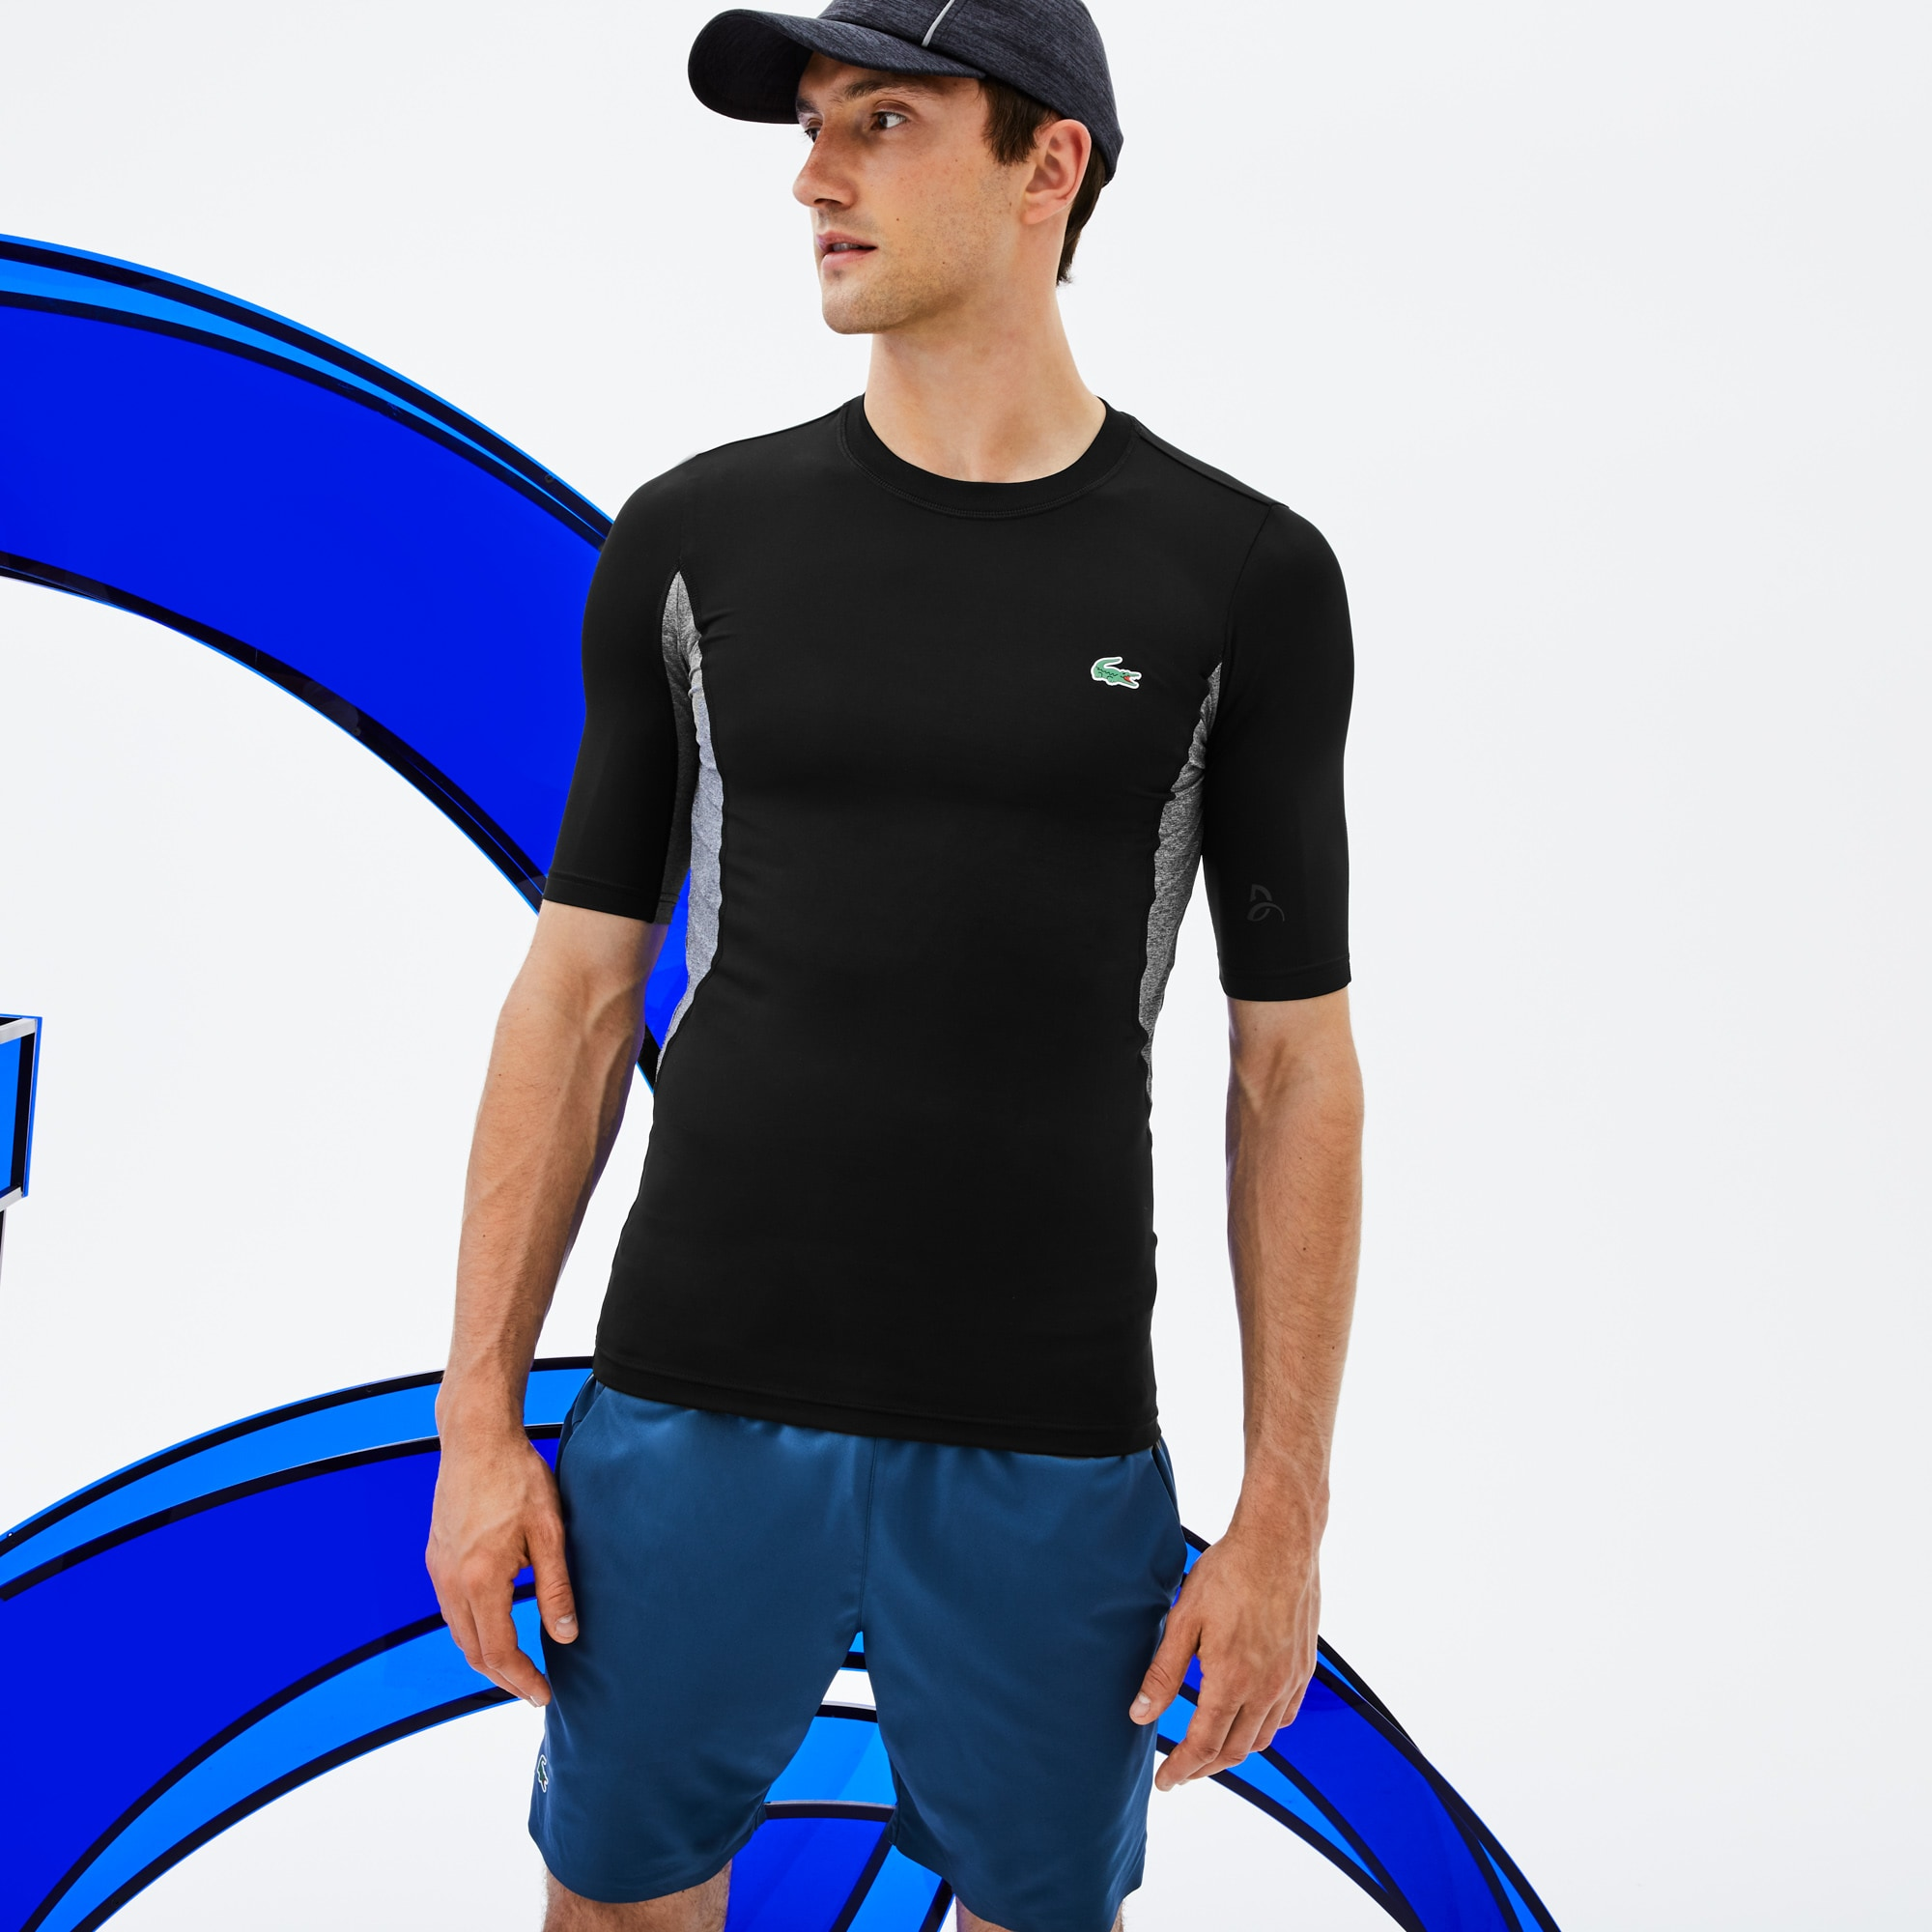 Men's SPORT Crew Neck Stretch Technical T-Shirt - Novak Djokovic Collection